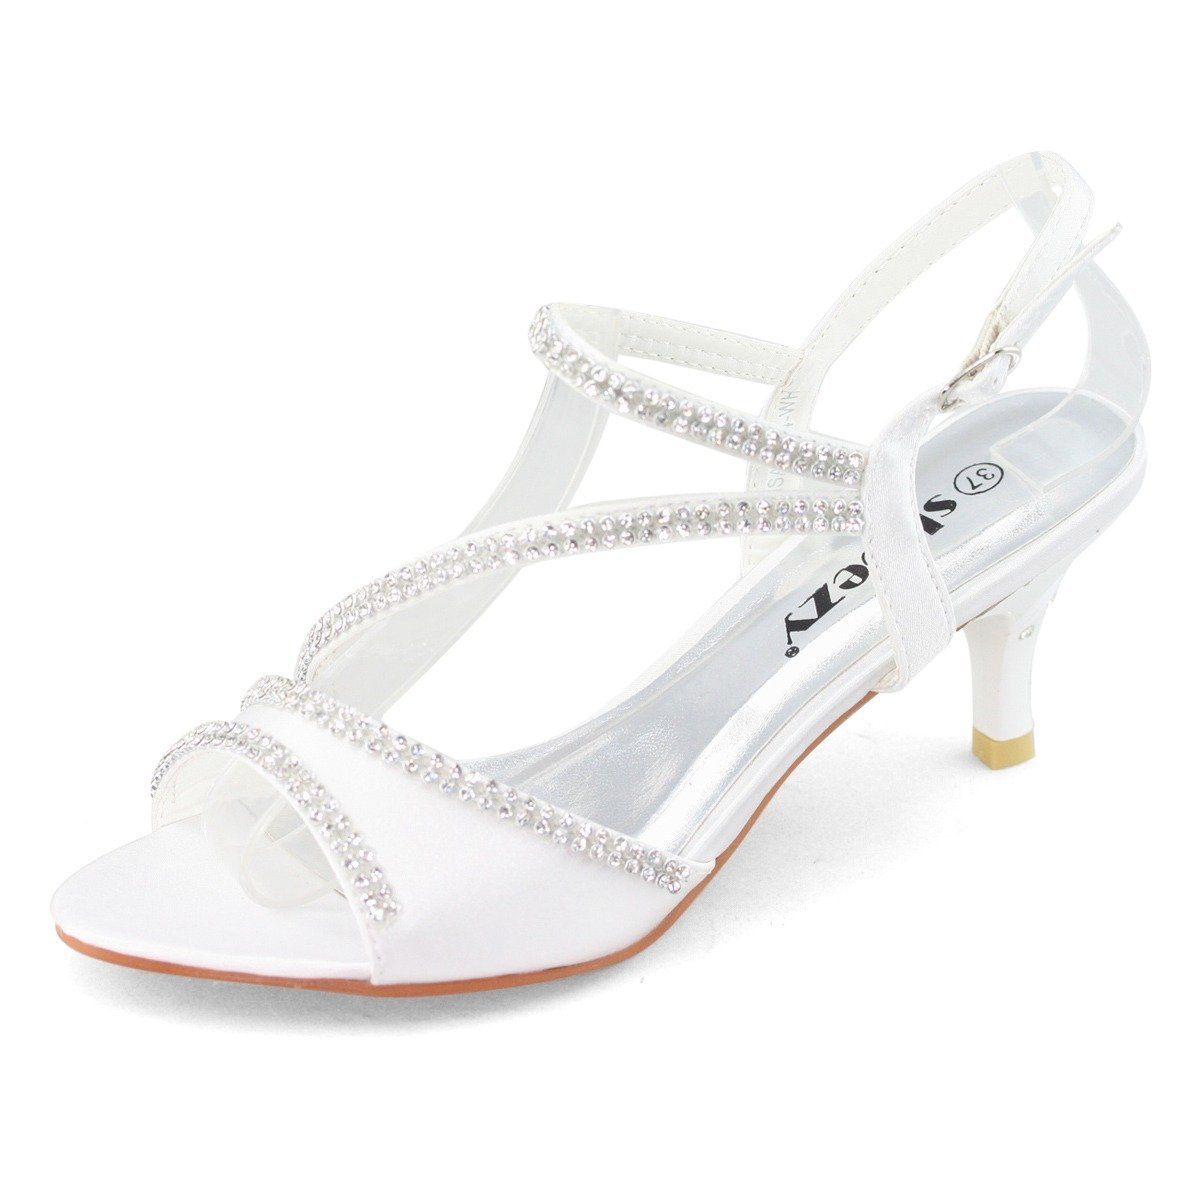 73cfae7632d SHOEZY Ladies Satin Kitten Heels Dress Shoes Ankle Strap Xmas Party in  White Color